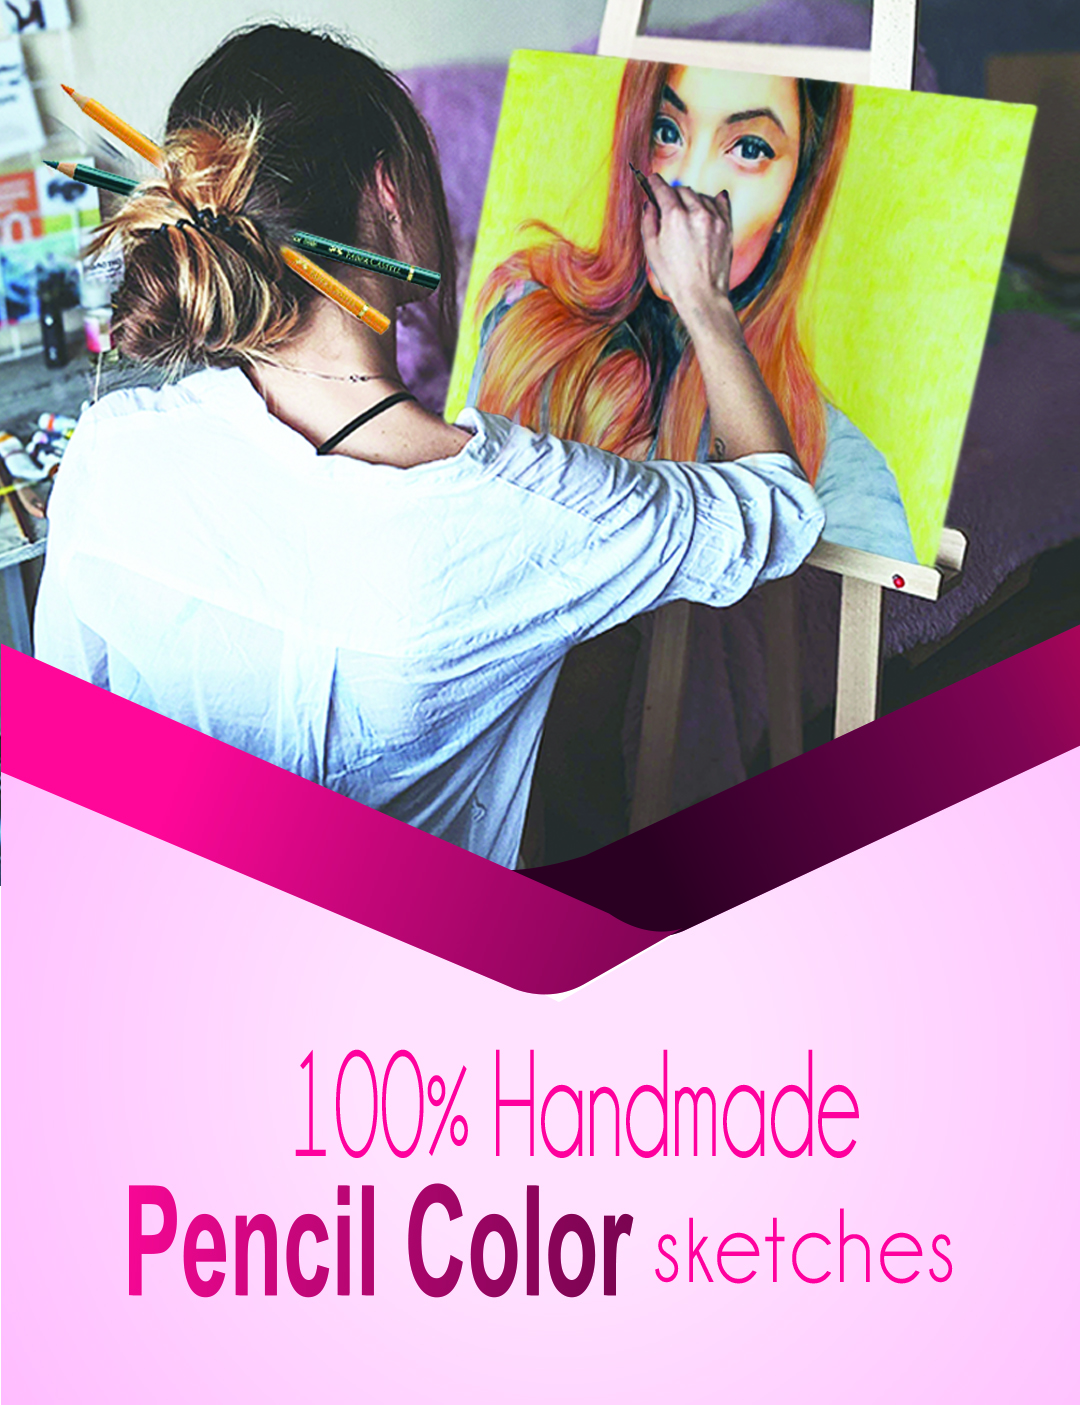 Pencil Color Drawing - BookMyPainting